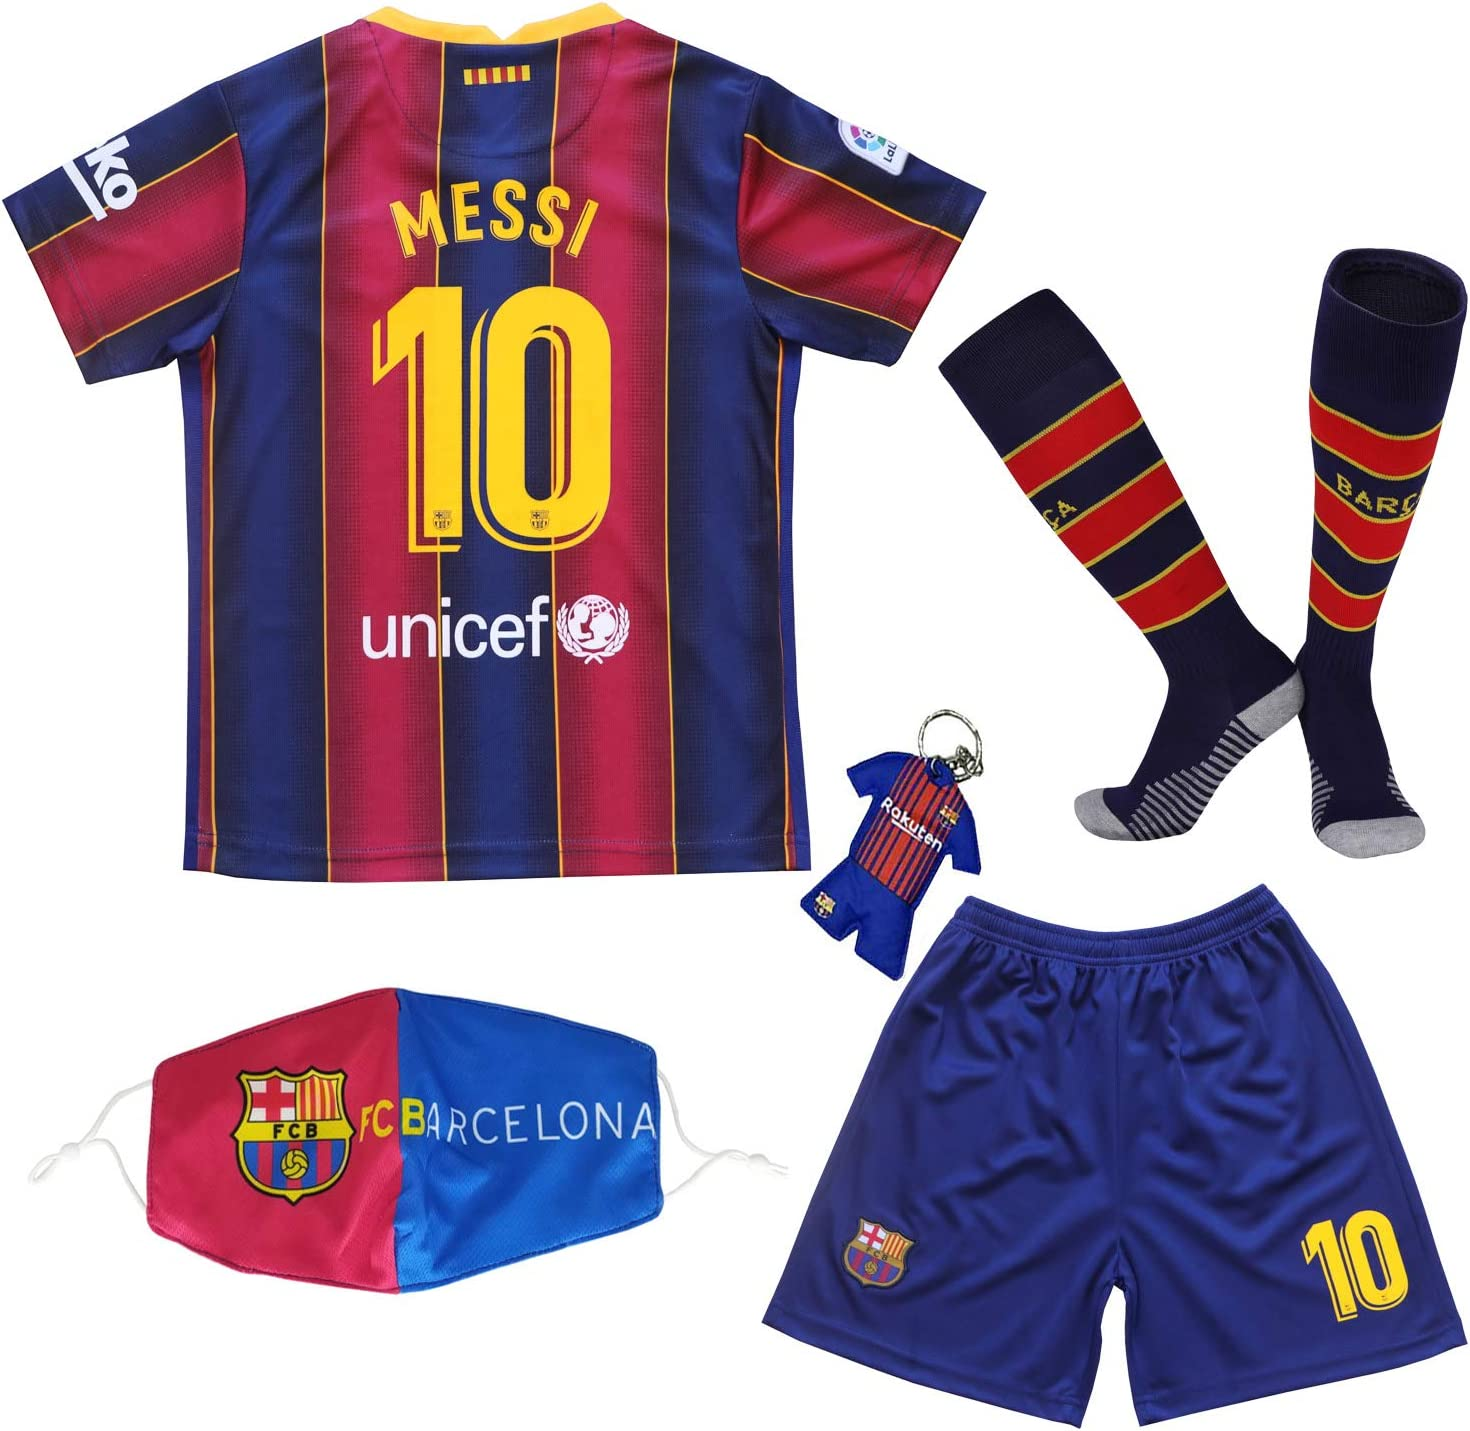 BIRDBOX Youth Sportswear Barcelona Leo Messi 10 Kids Home Soccer Jersey/Shorts Bag Keychain Football Socks Set